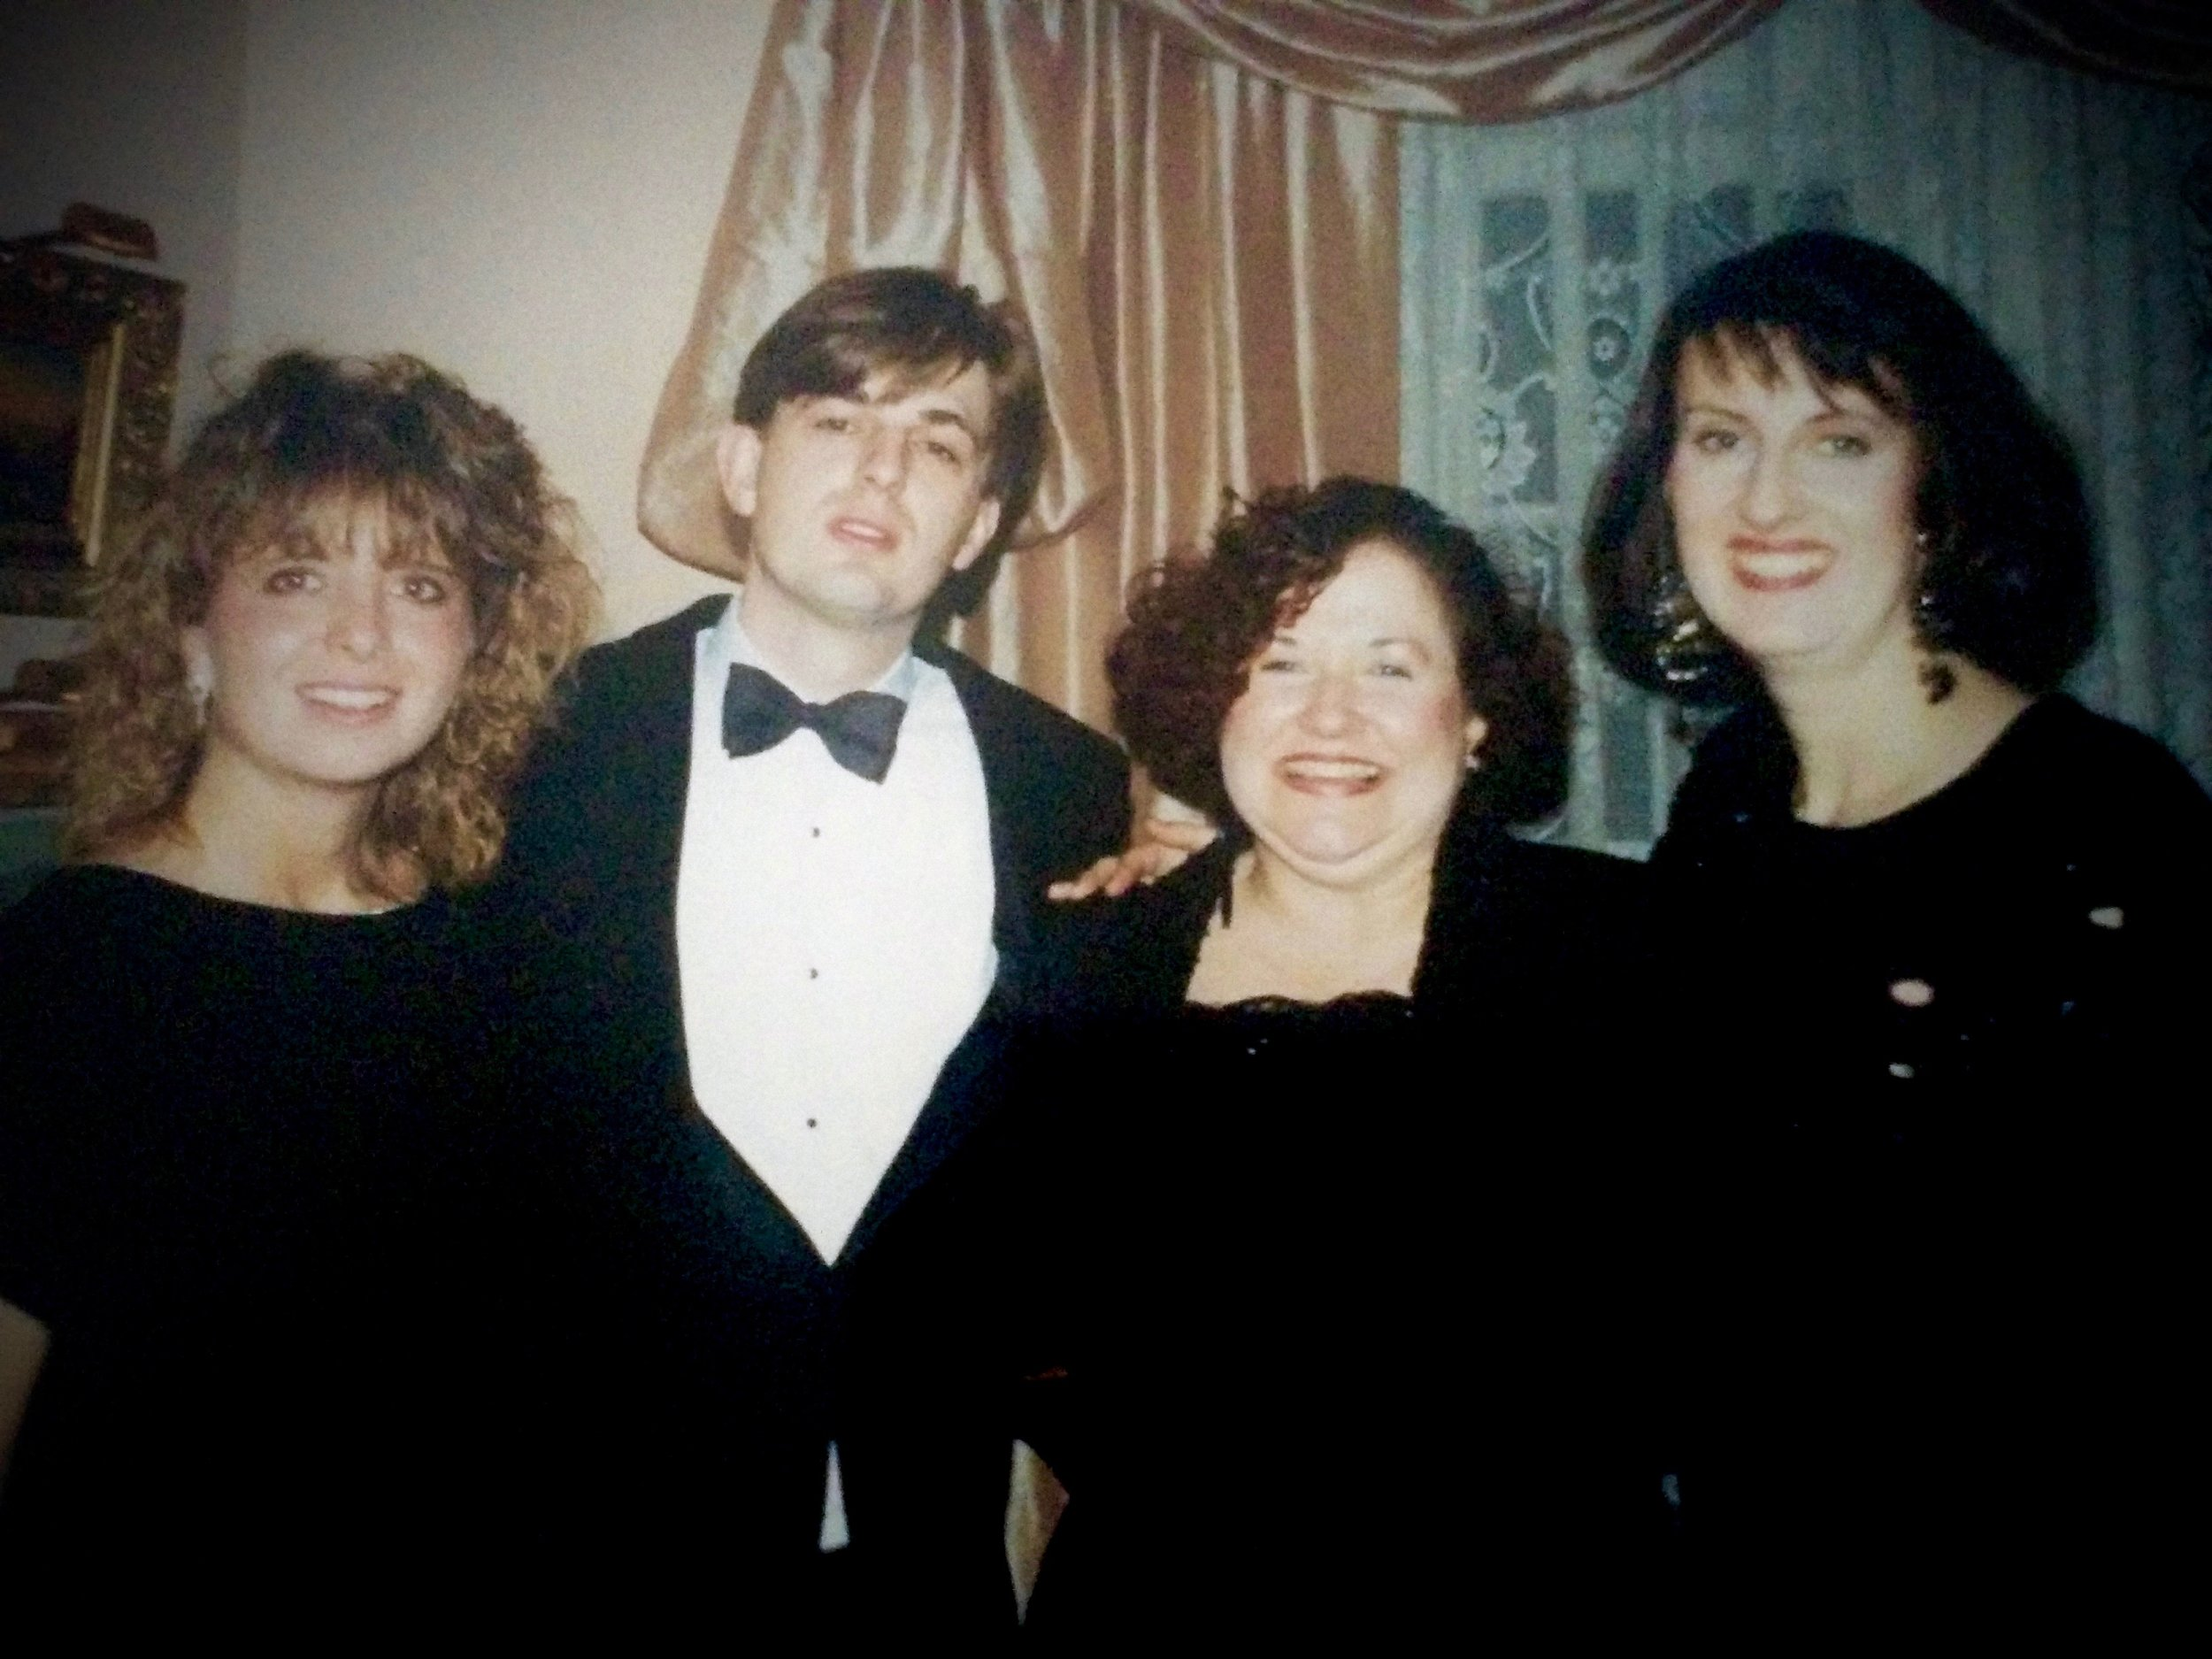 CEA Christmas party, early 90s; photo courtesy of Tia Plough